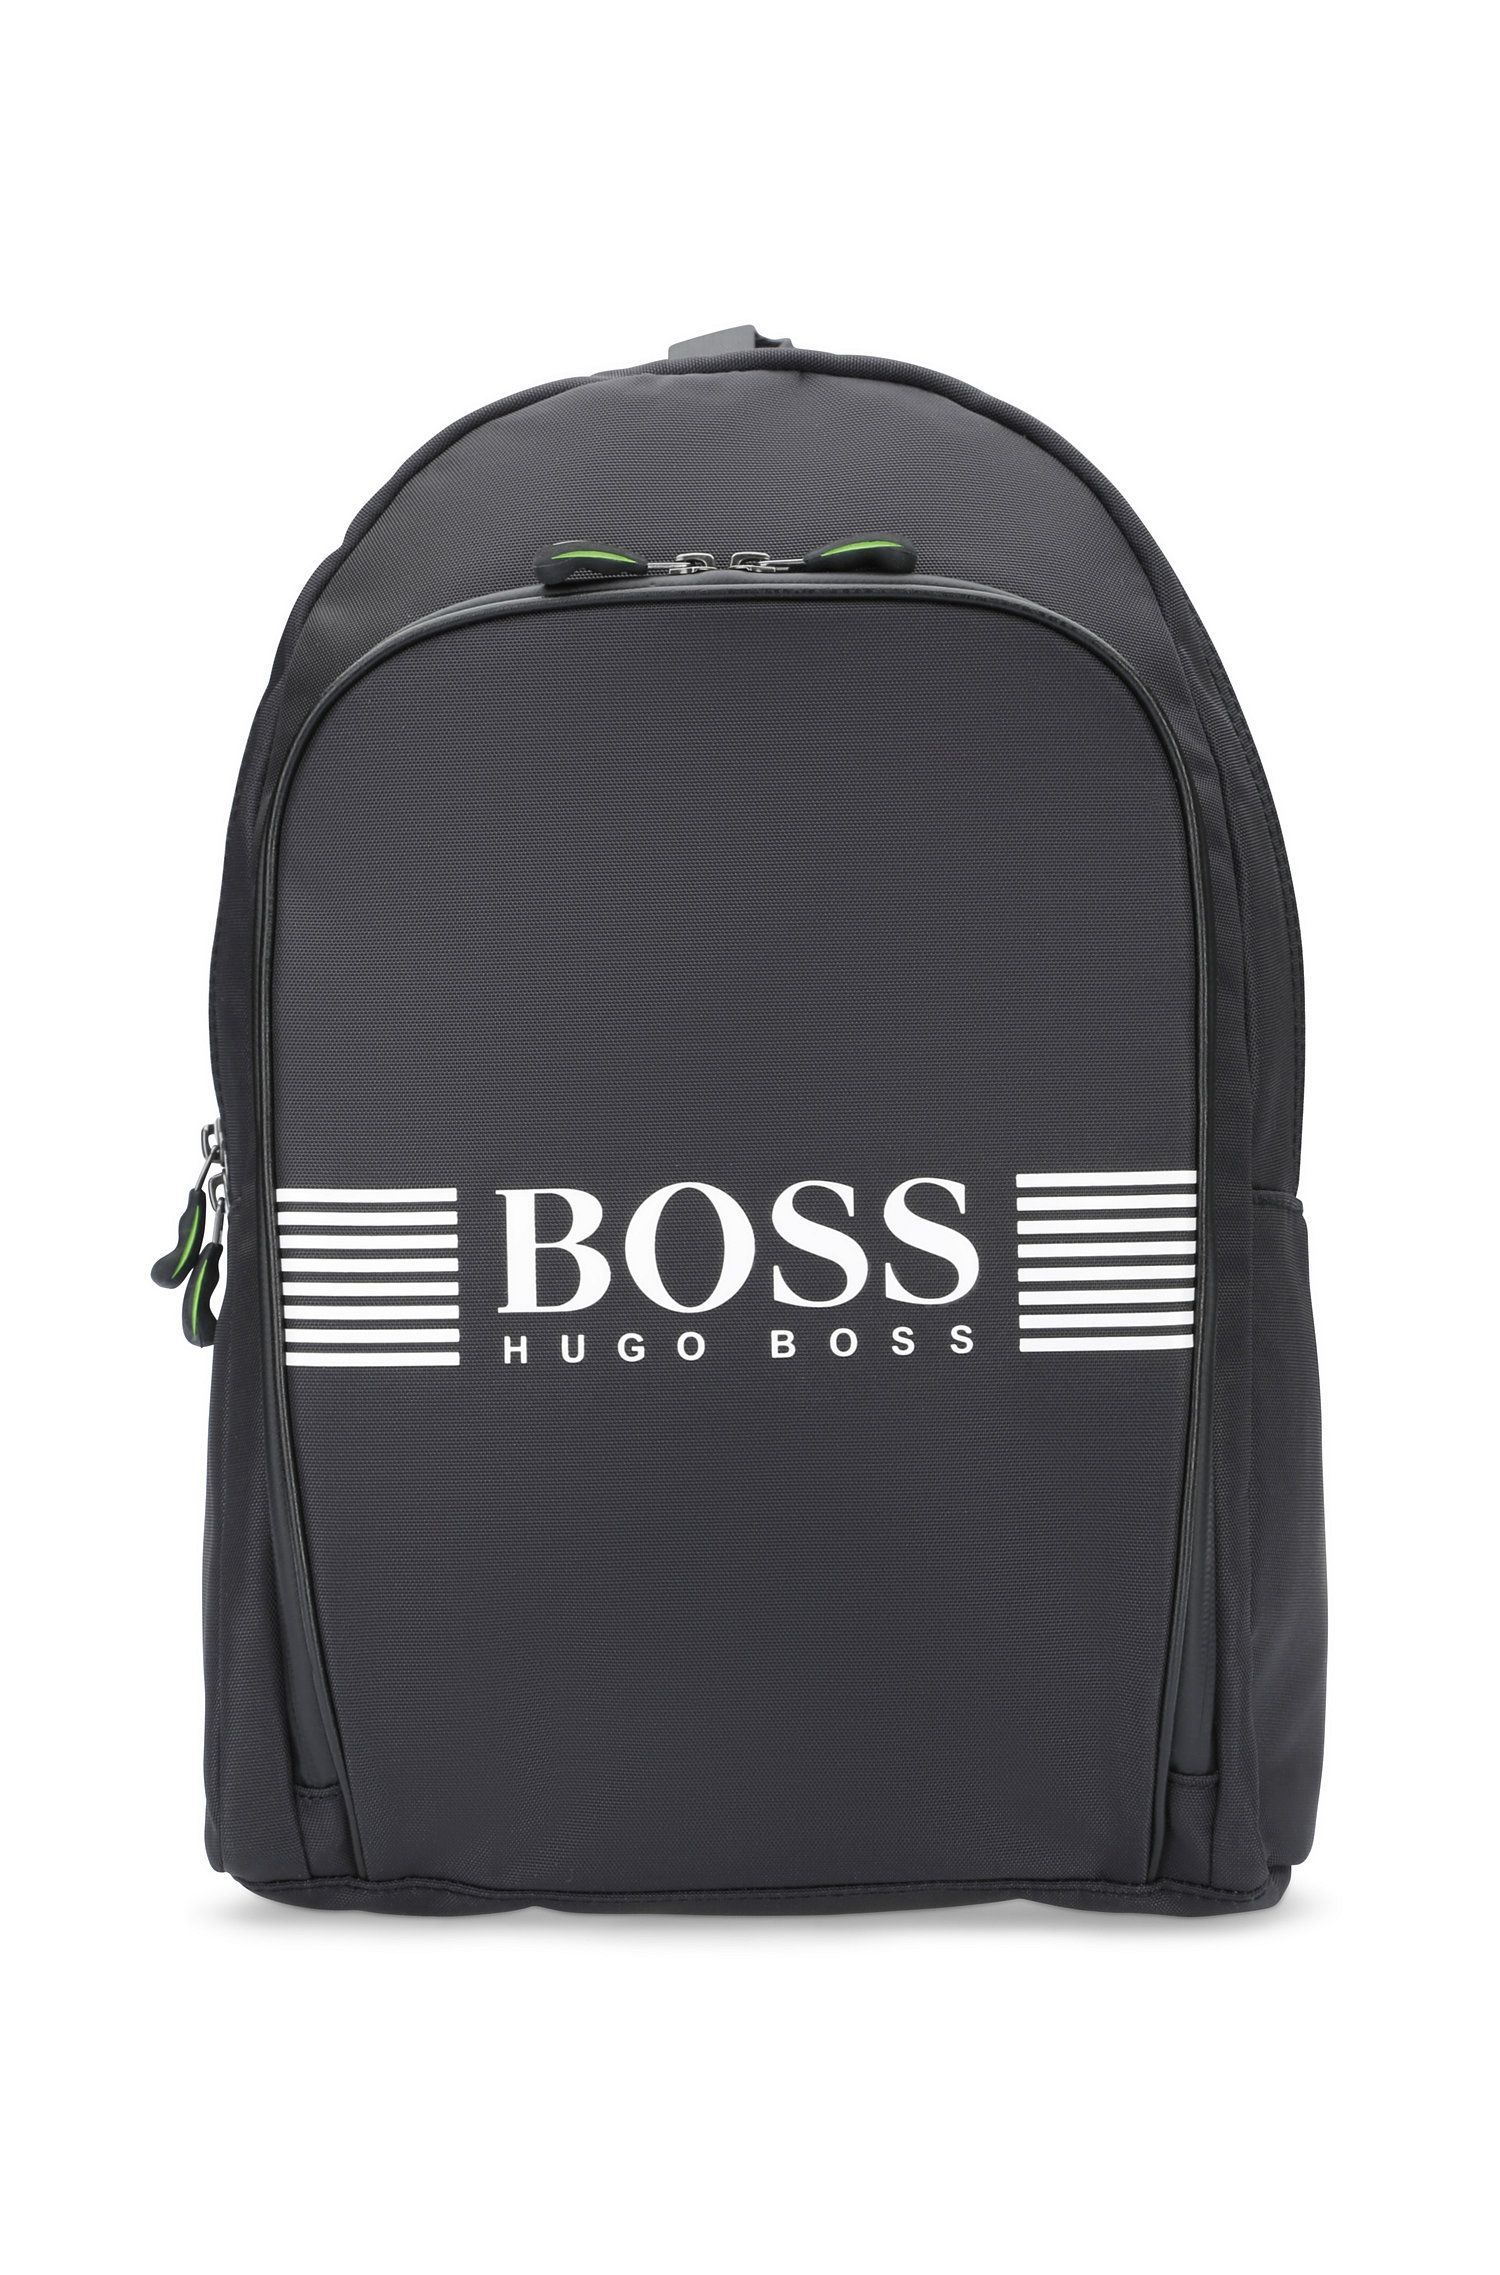 Nylon backpack with statement logo detail